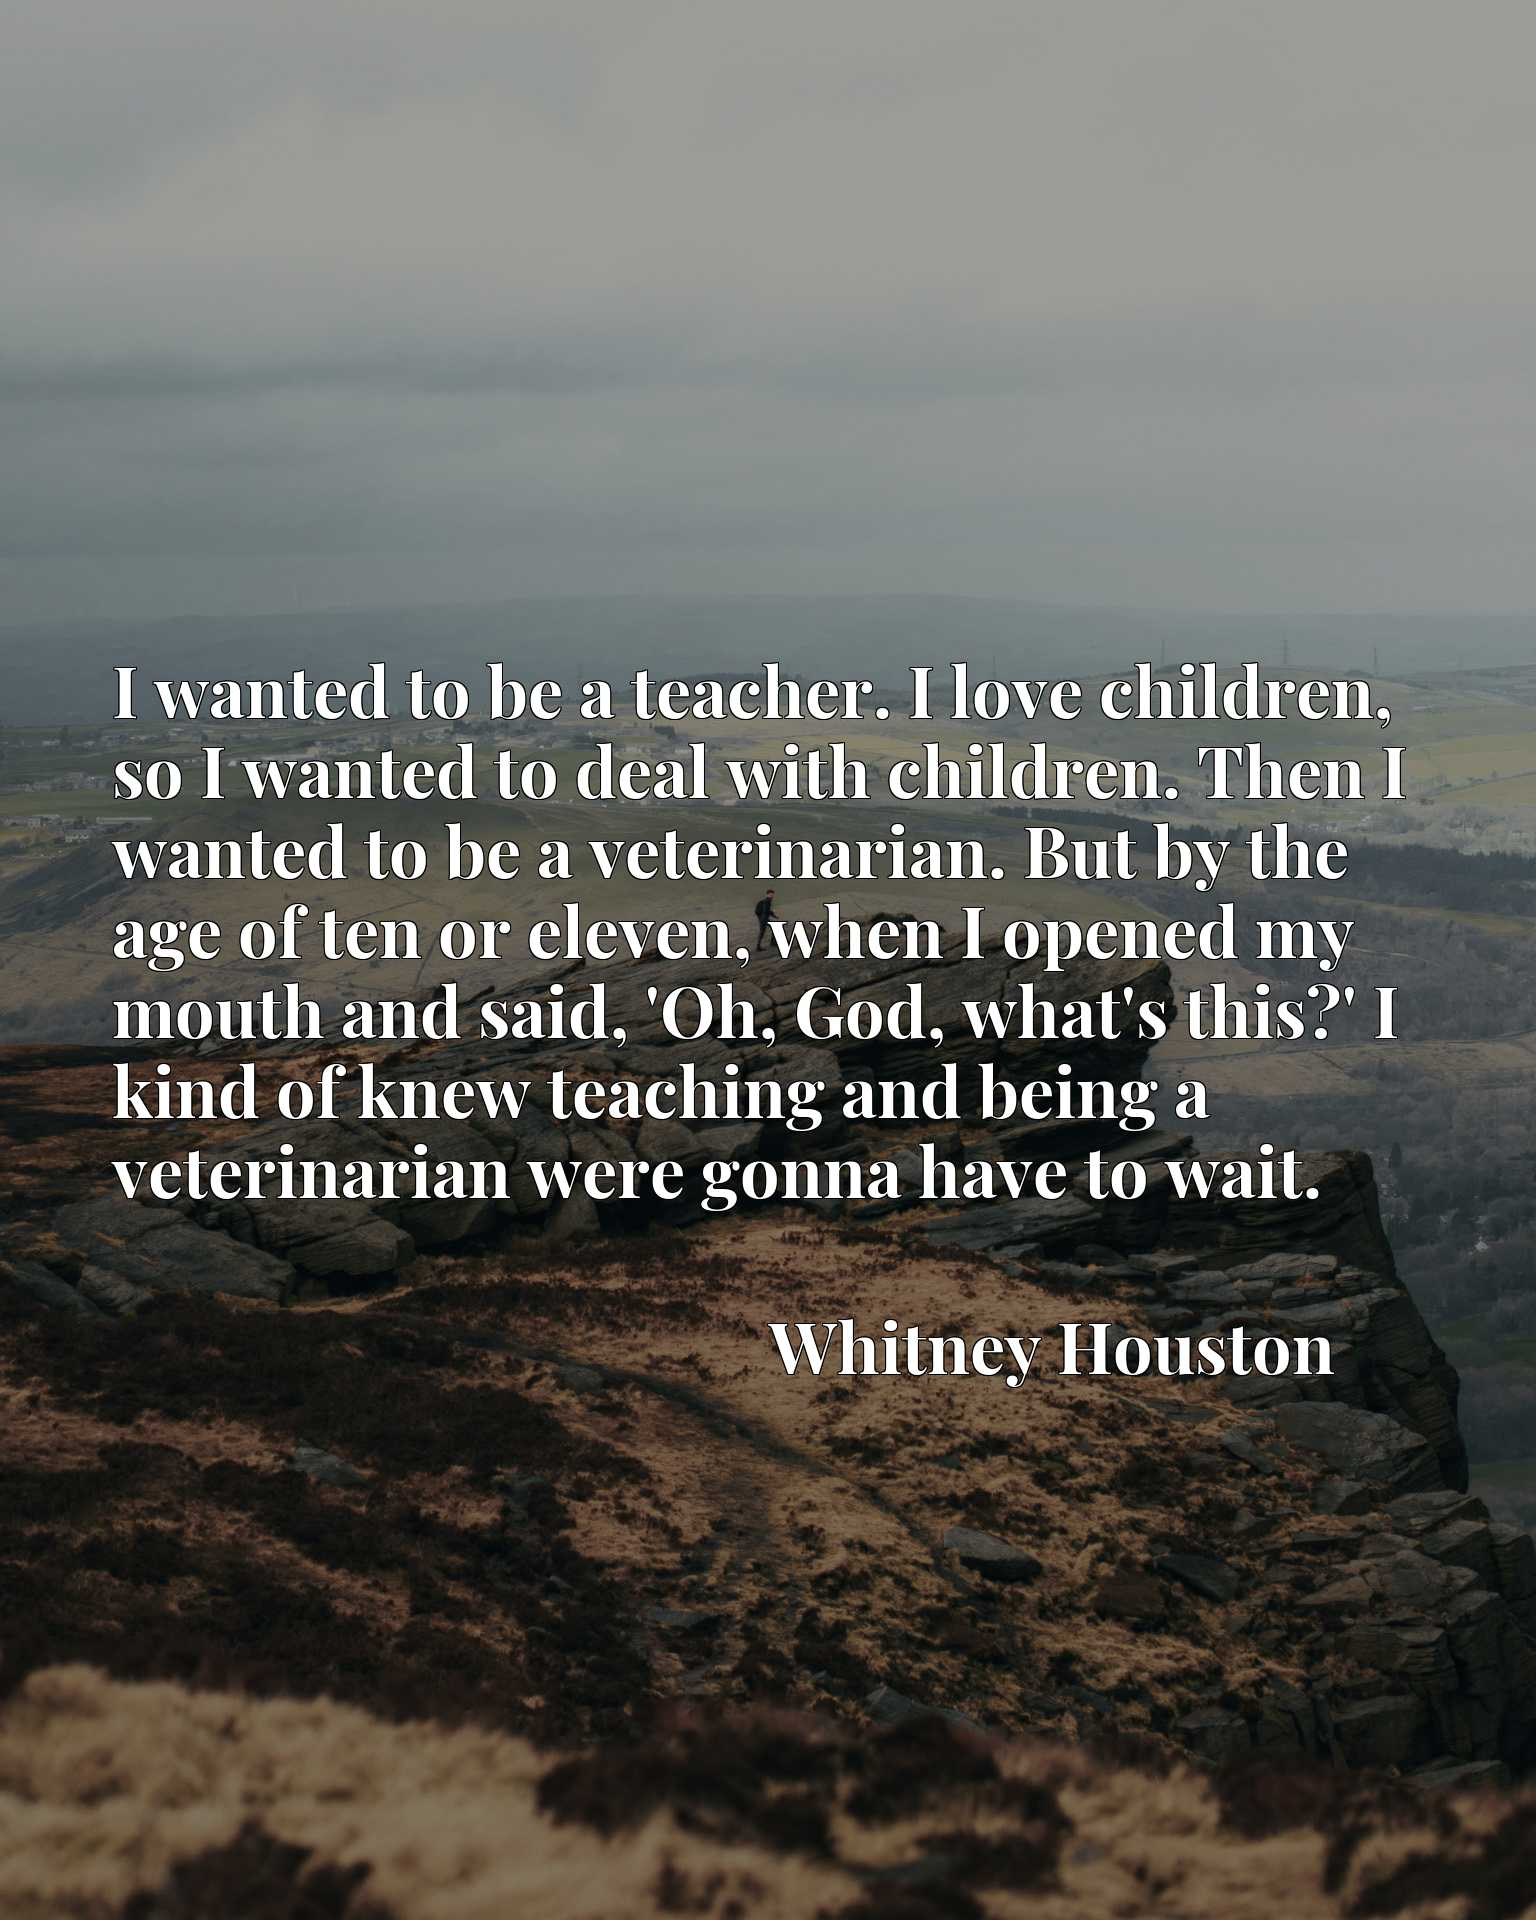 I wanted to be a teacher. I love children, so I wanted to deal with children. Then I wanted to be a veterinarian. But by the age of ten or eleven, when I opened my mouth and said, 'Oh, God, what's this?' I kind of knew teaching and being a veterinarian were gonna have to wait.